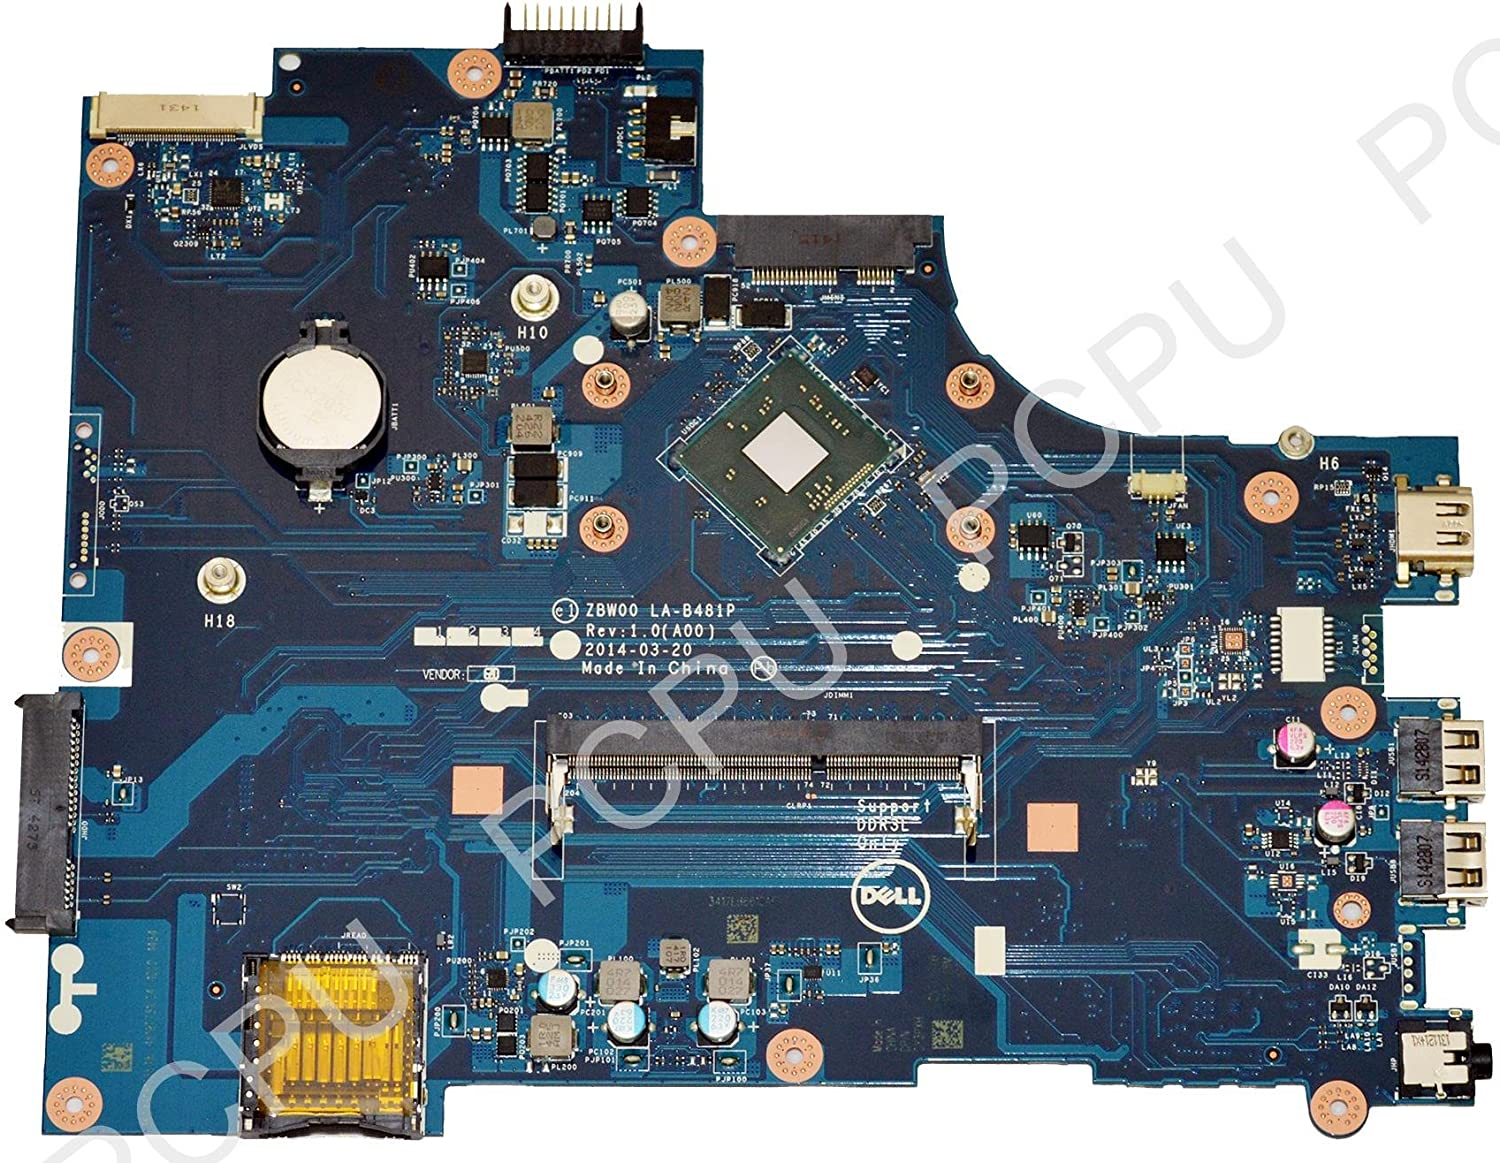 Y3PXH Dell Inspiron 15 3531 Laptop Motherboard w/ Intel Pentium N3530 2.16GHz CPU